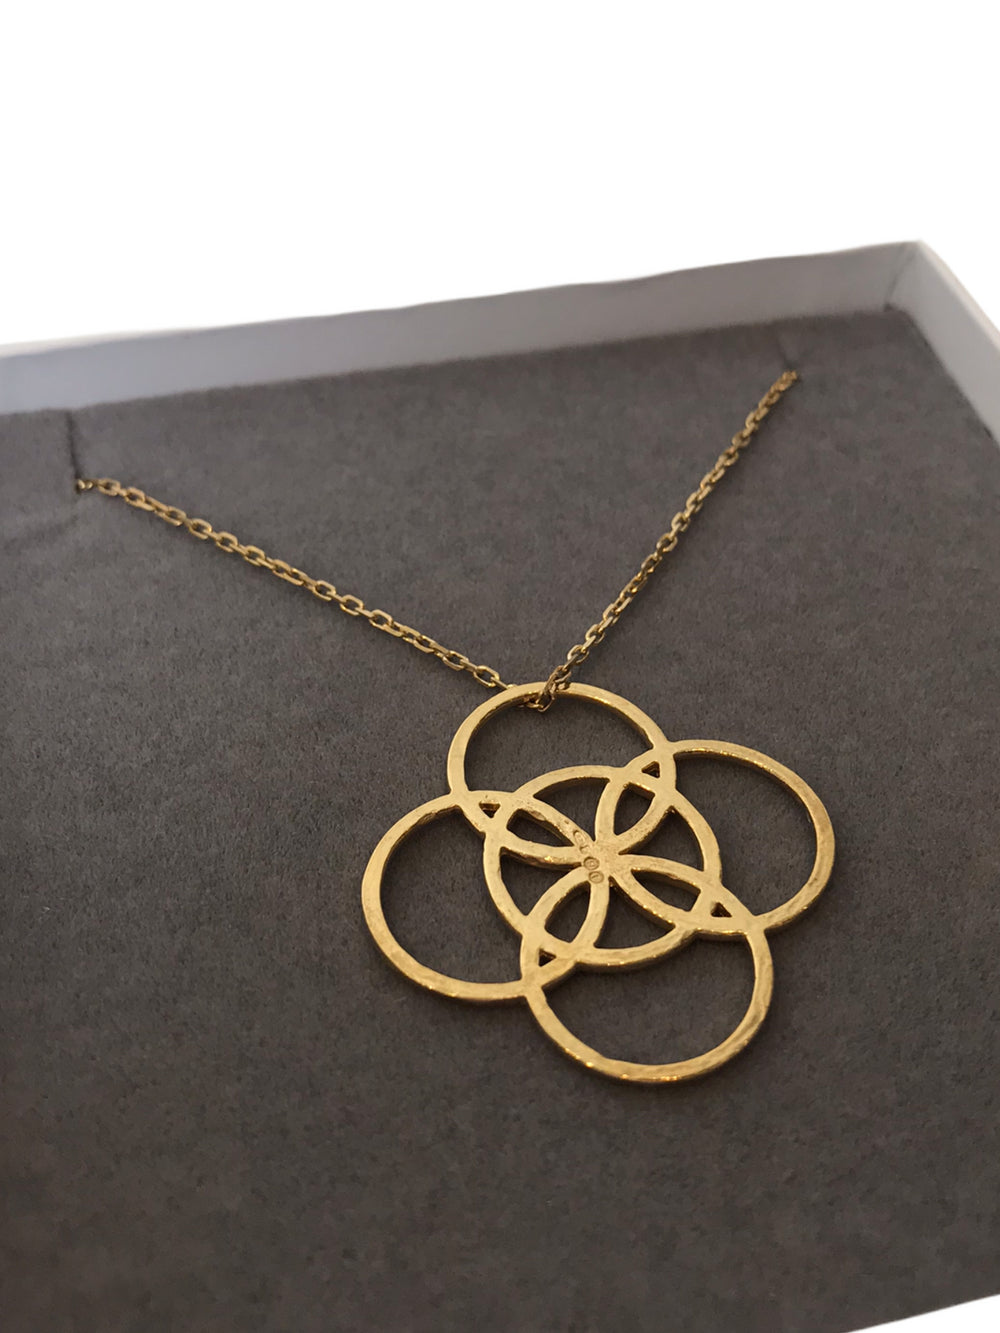 Liwu Jewellery Solid Gold Necklace - As Seen on Instagram